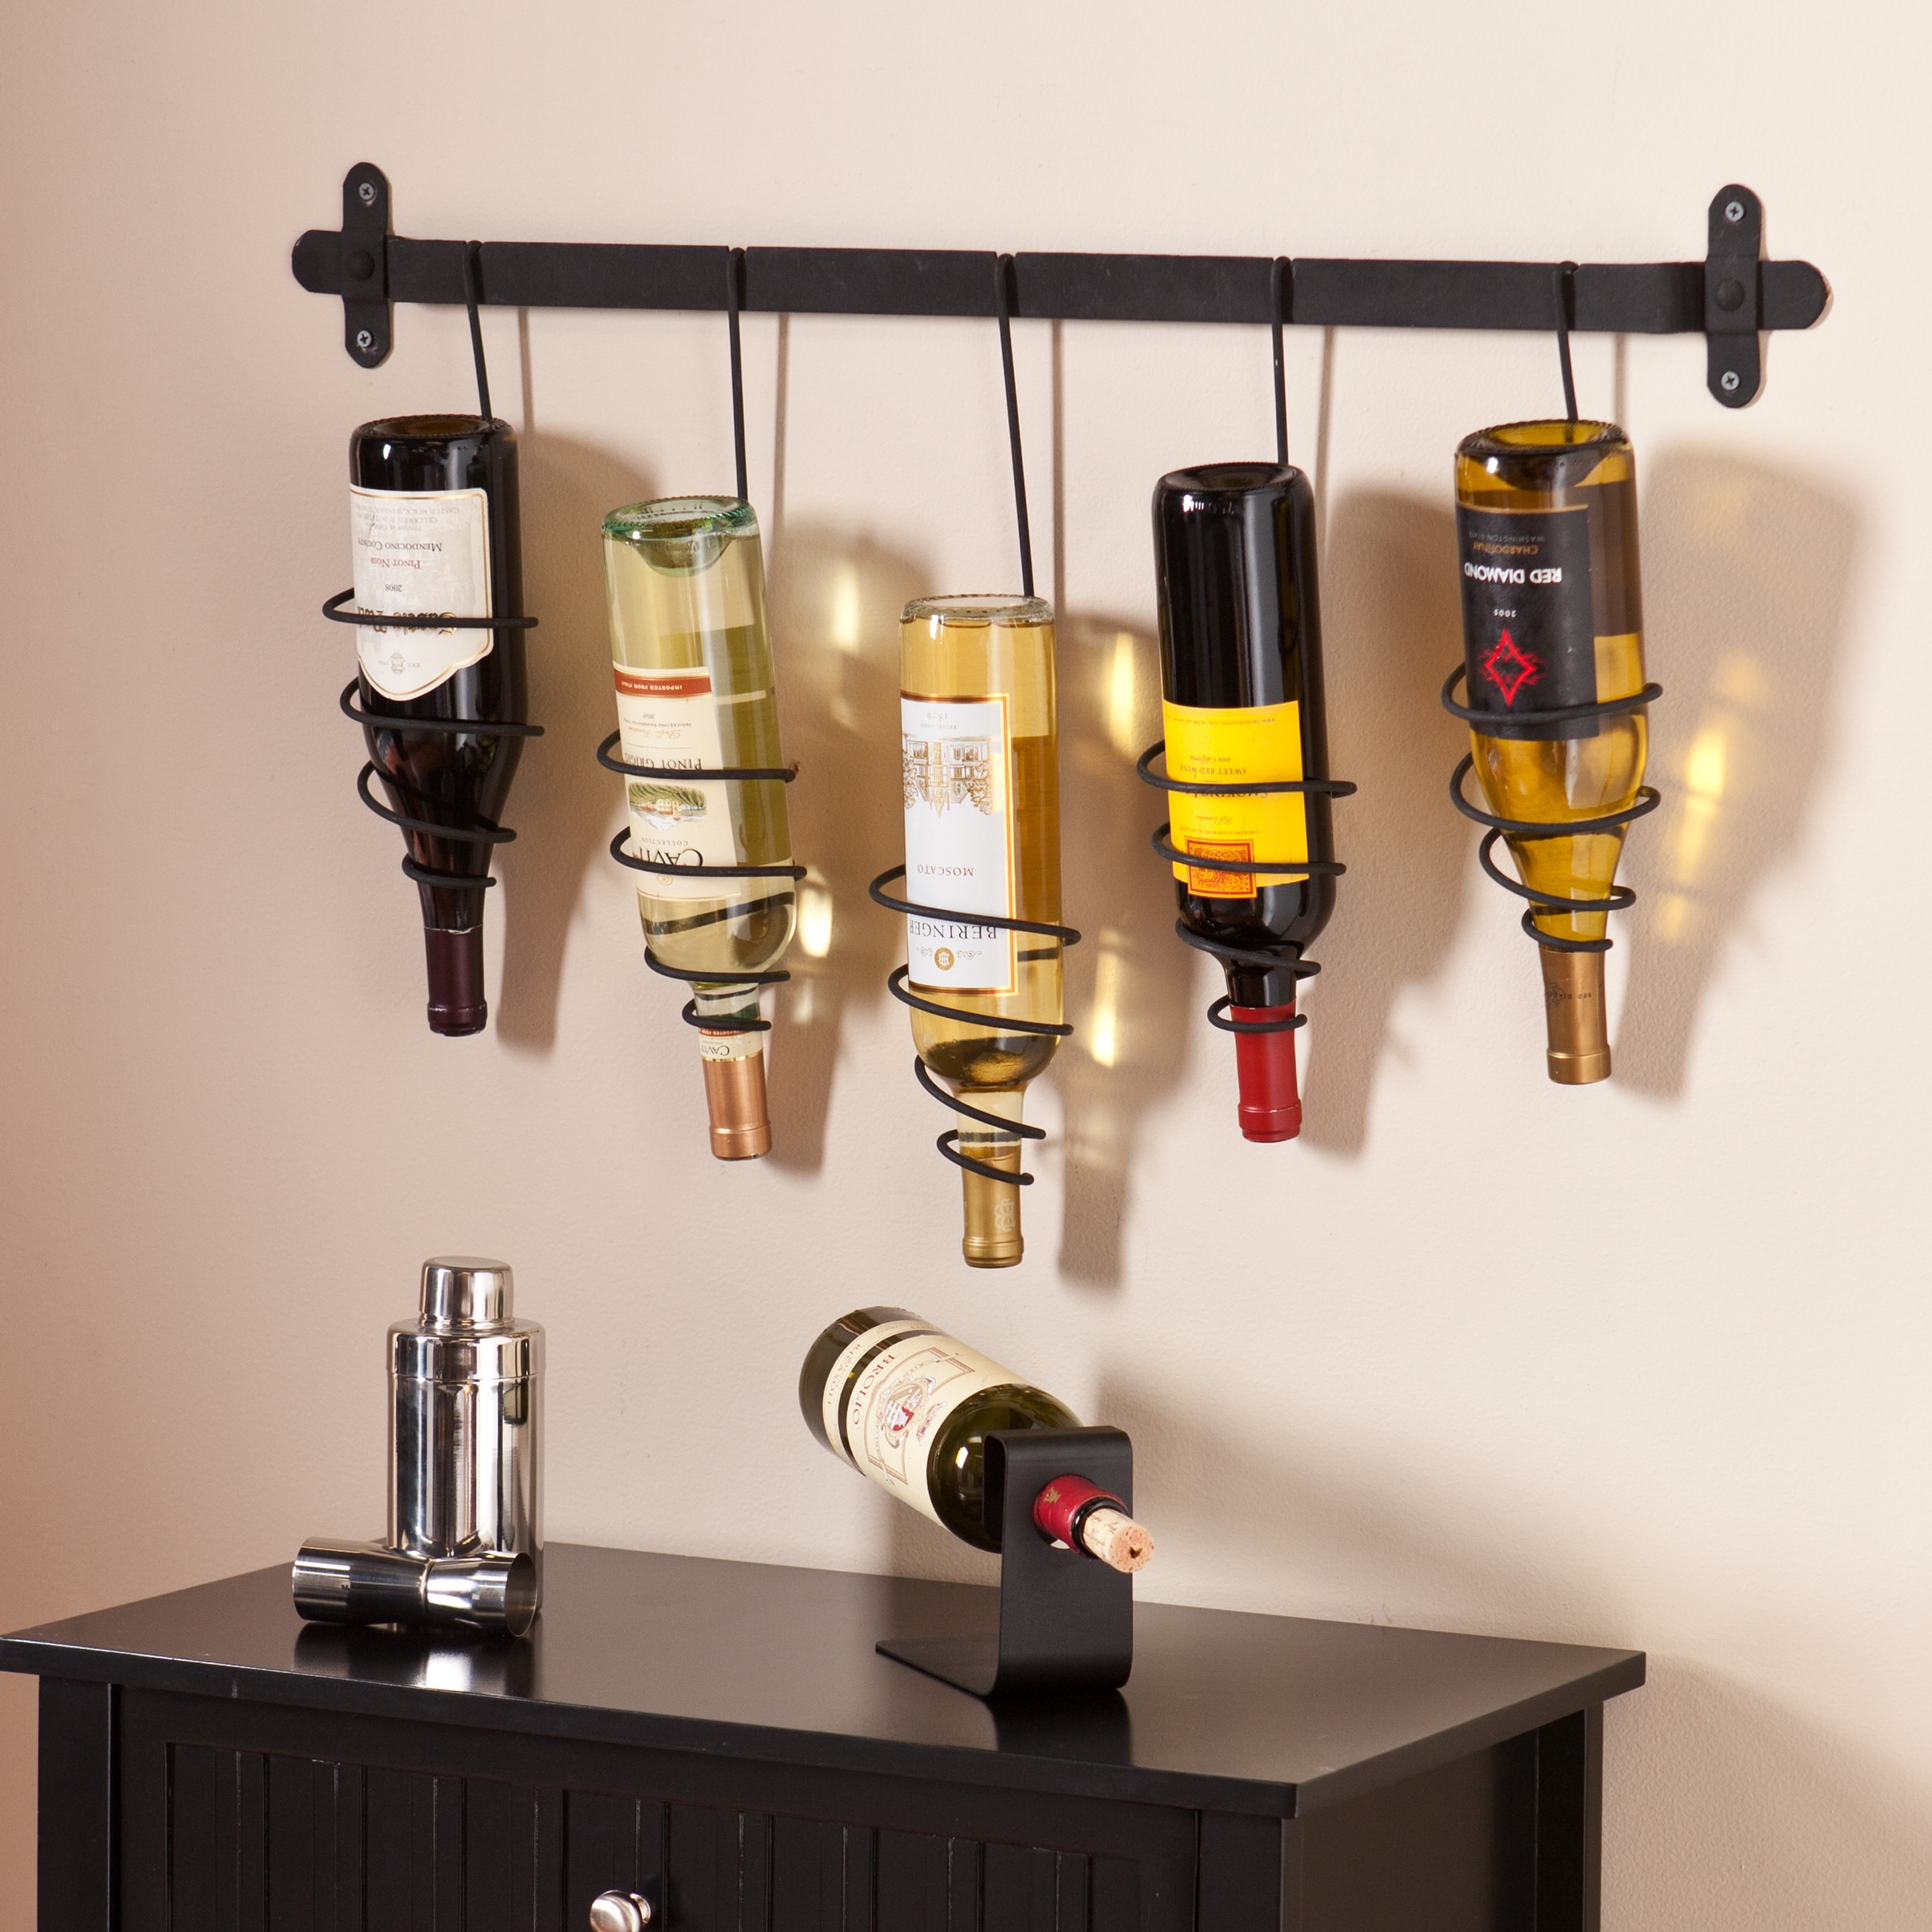 Shop Black Friday Deals On Copper Grove Caribou Wall Mount Wine Storage Rack On Sale Overstock 20559017